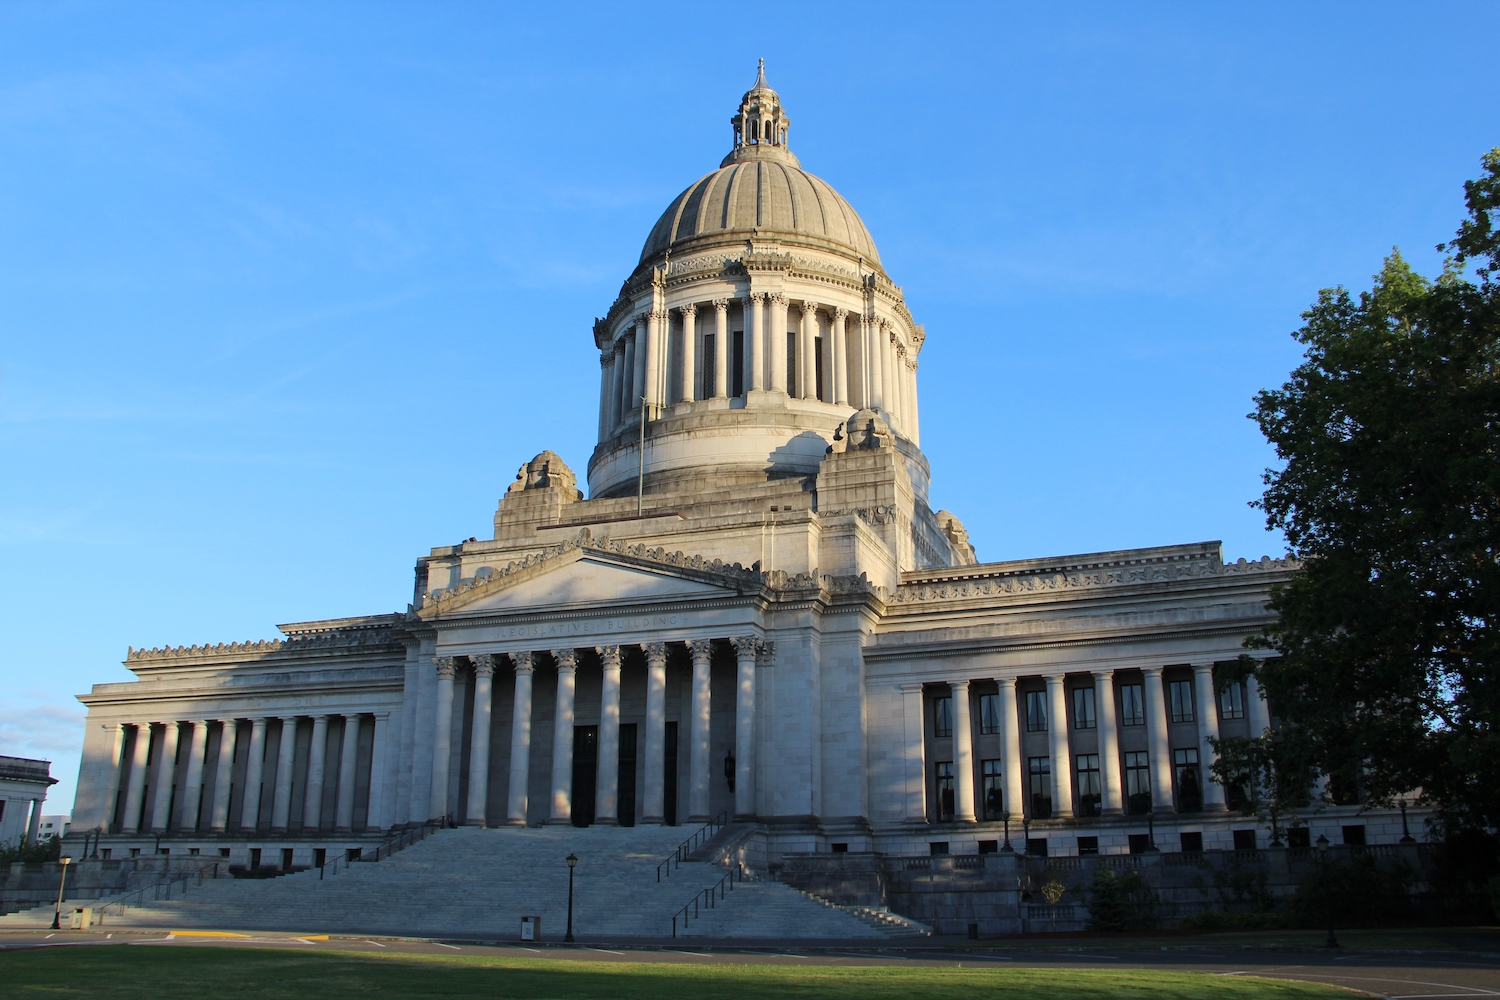 Washington State Capitol (Olympia, Washington)